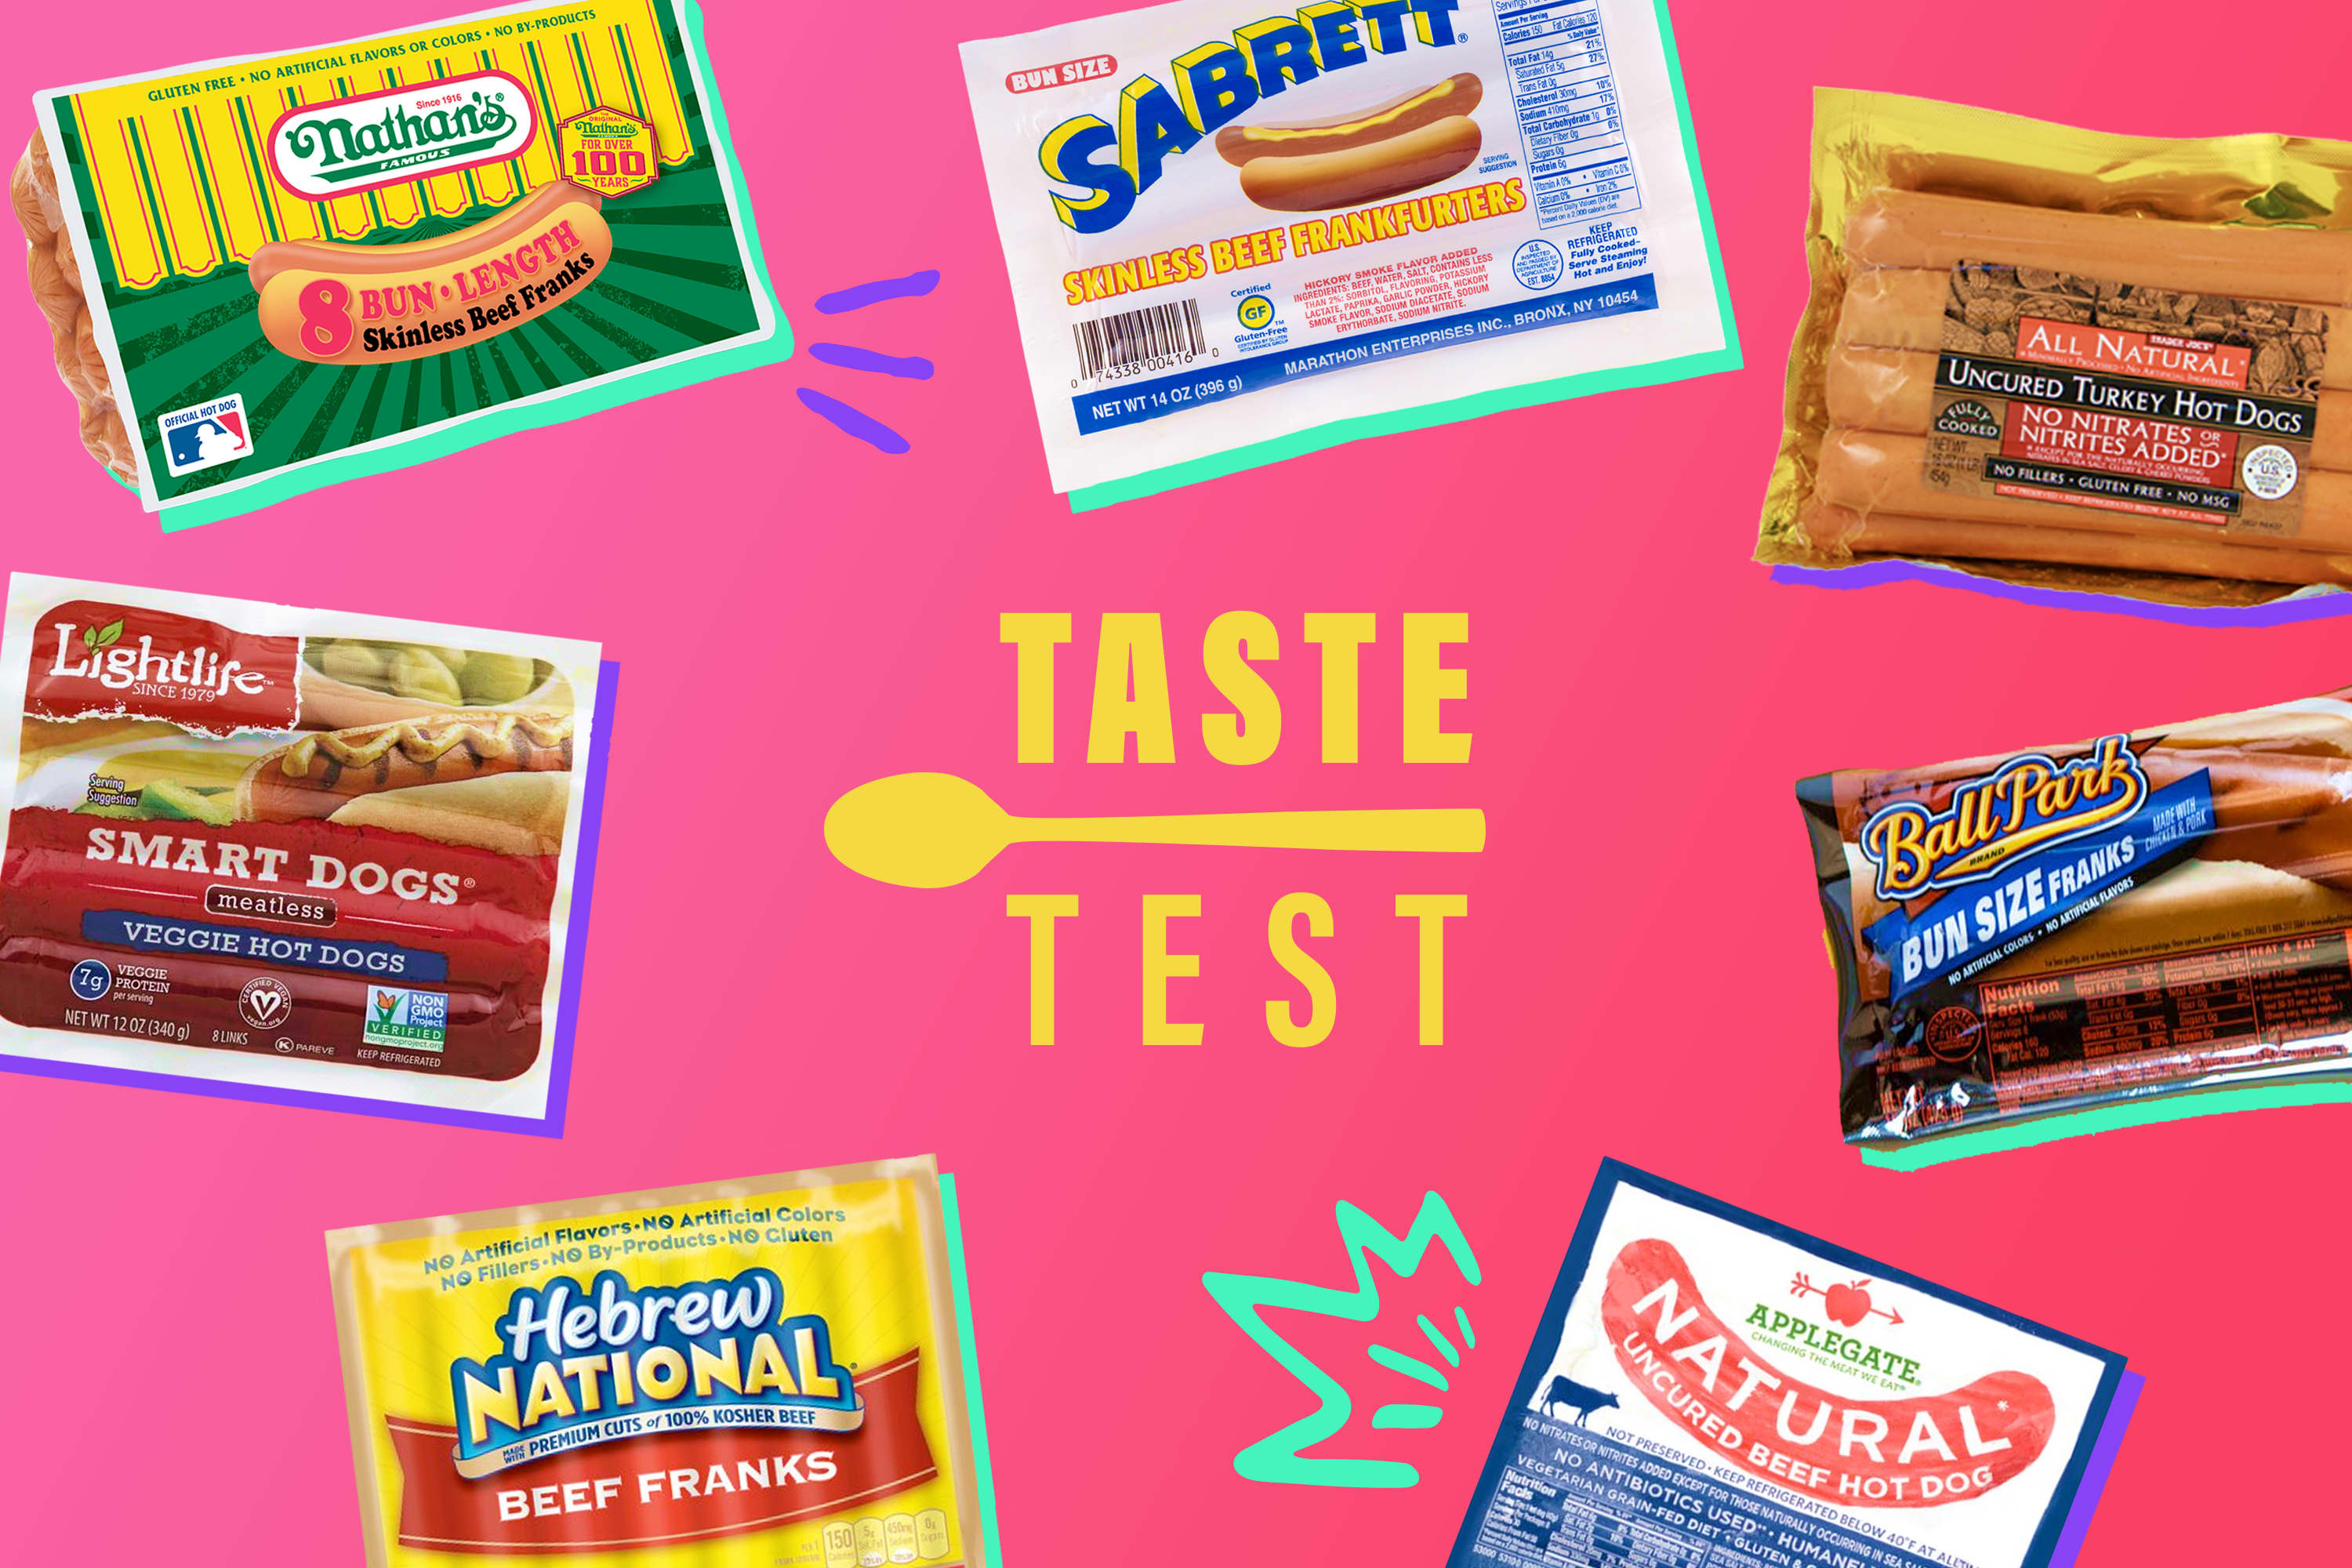 The Hot Dog Taste Test: We Tried 9 Brands and Here's What We Thought